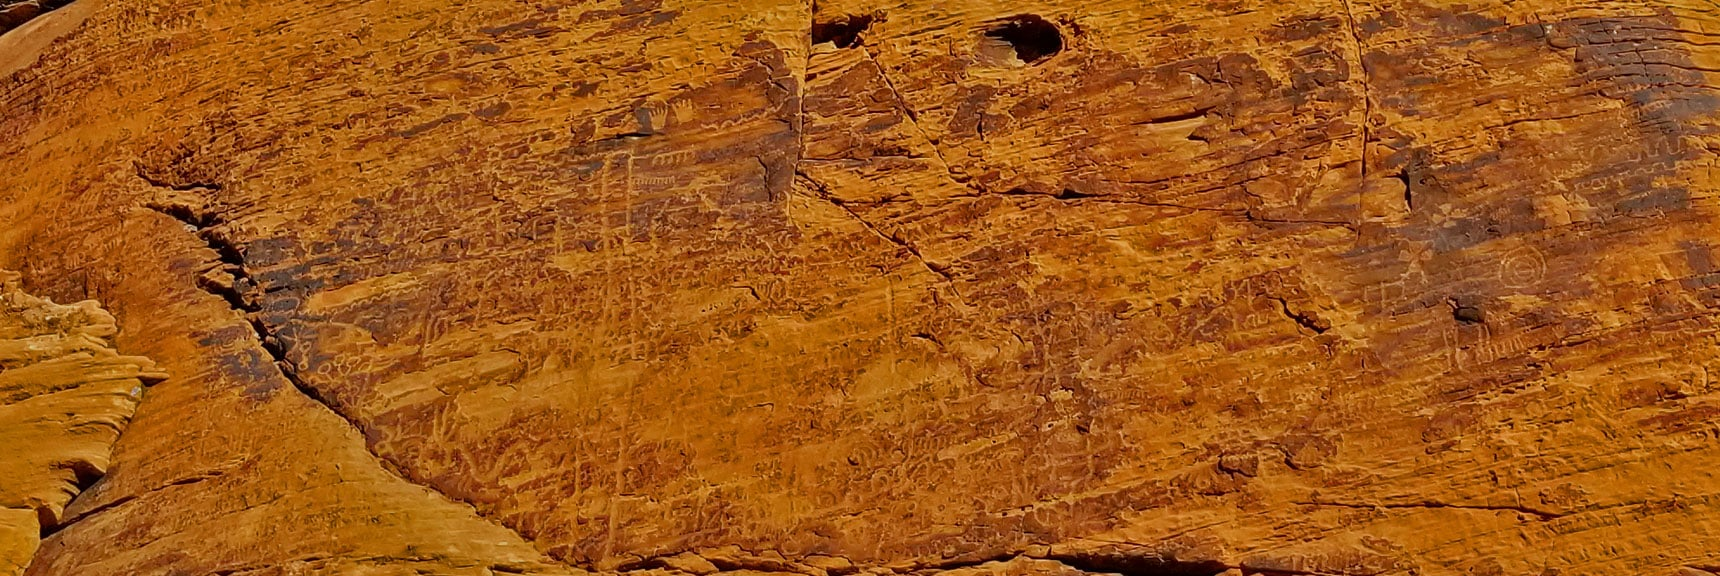 Petroglyphs on Mouse's Tank Trail in Valley of Fire State Park, Nevada, Slide 25